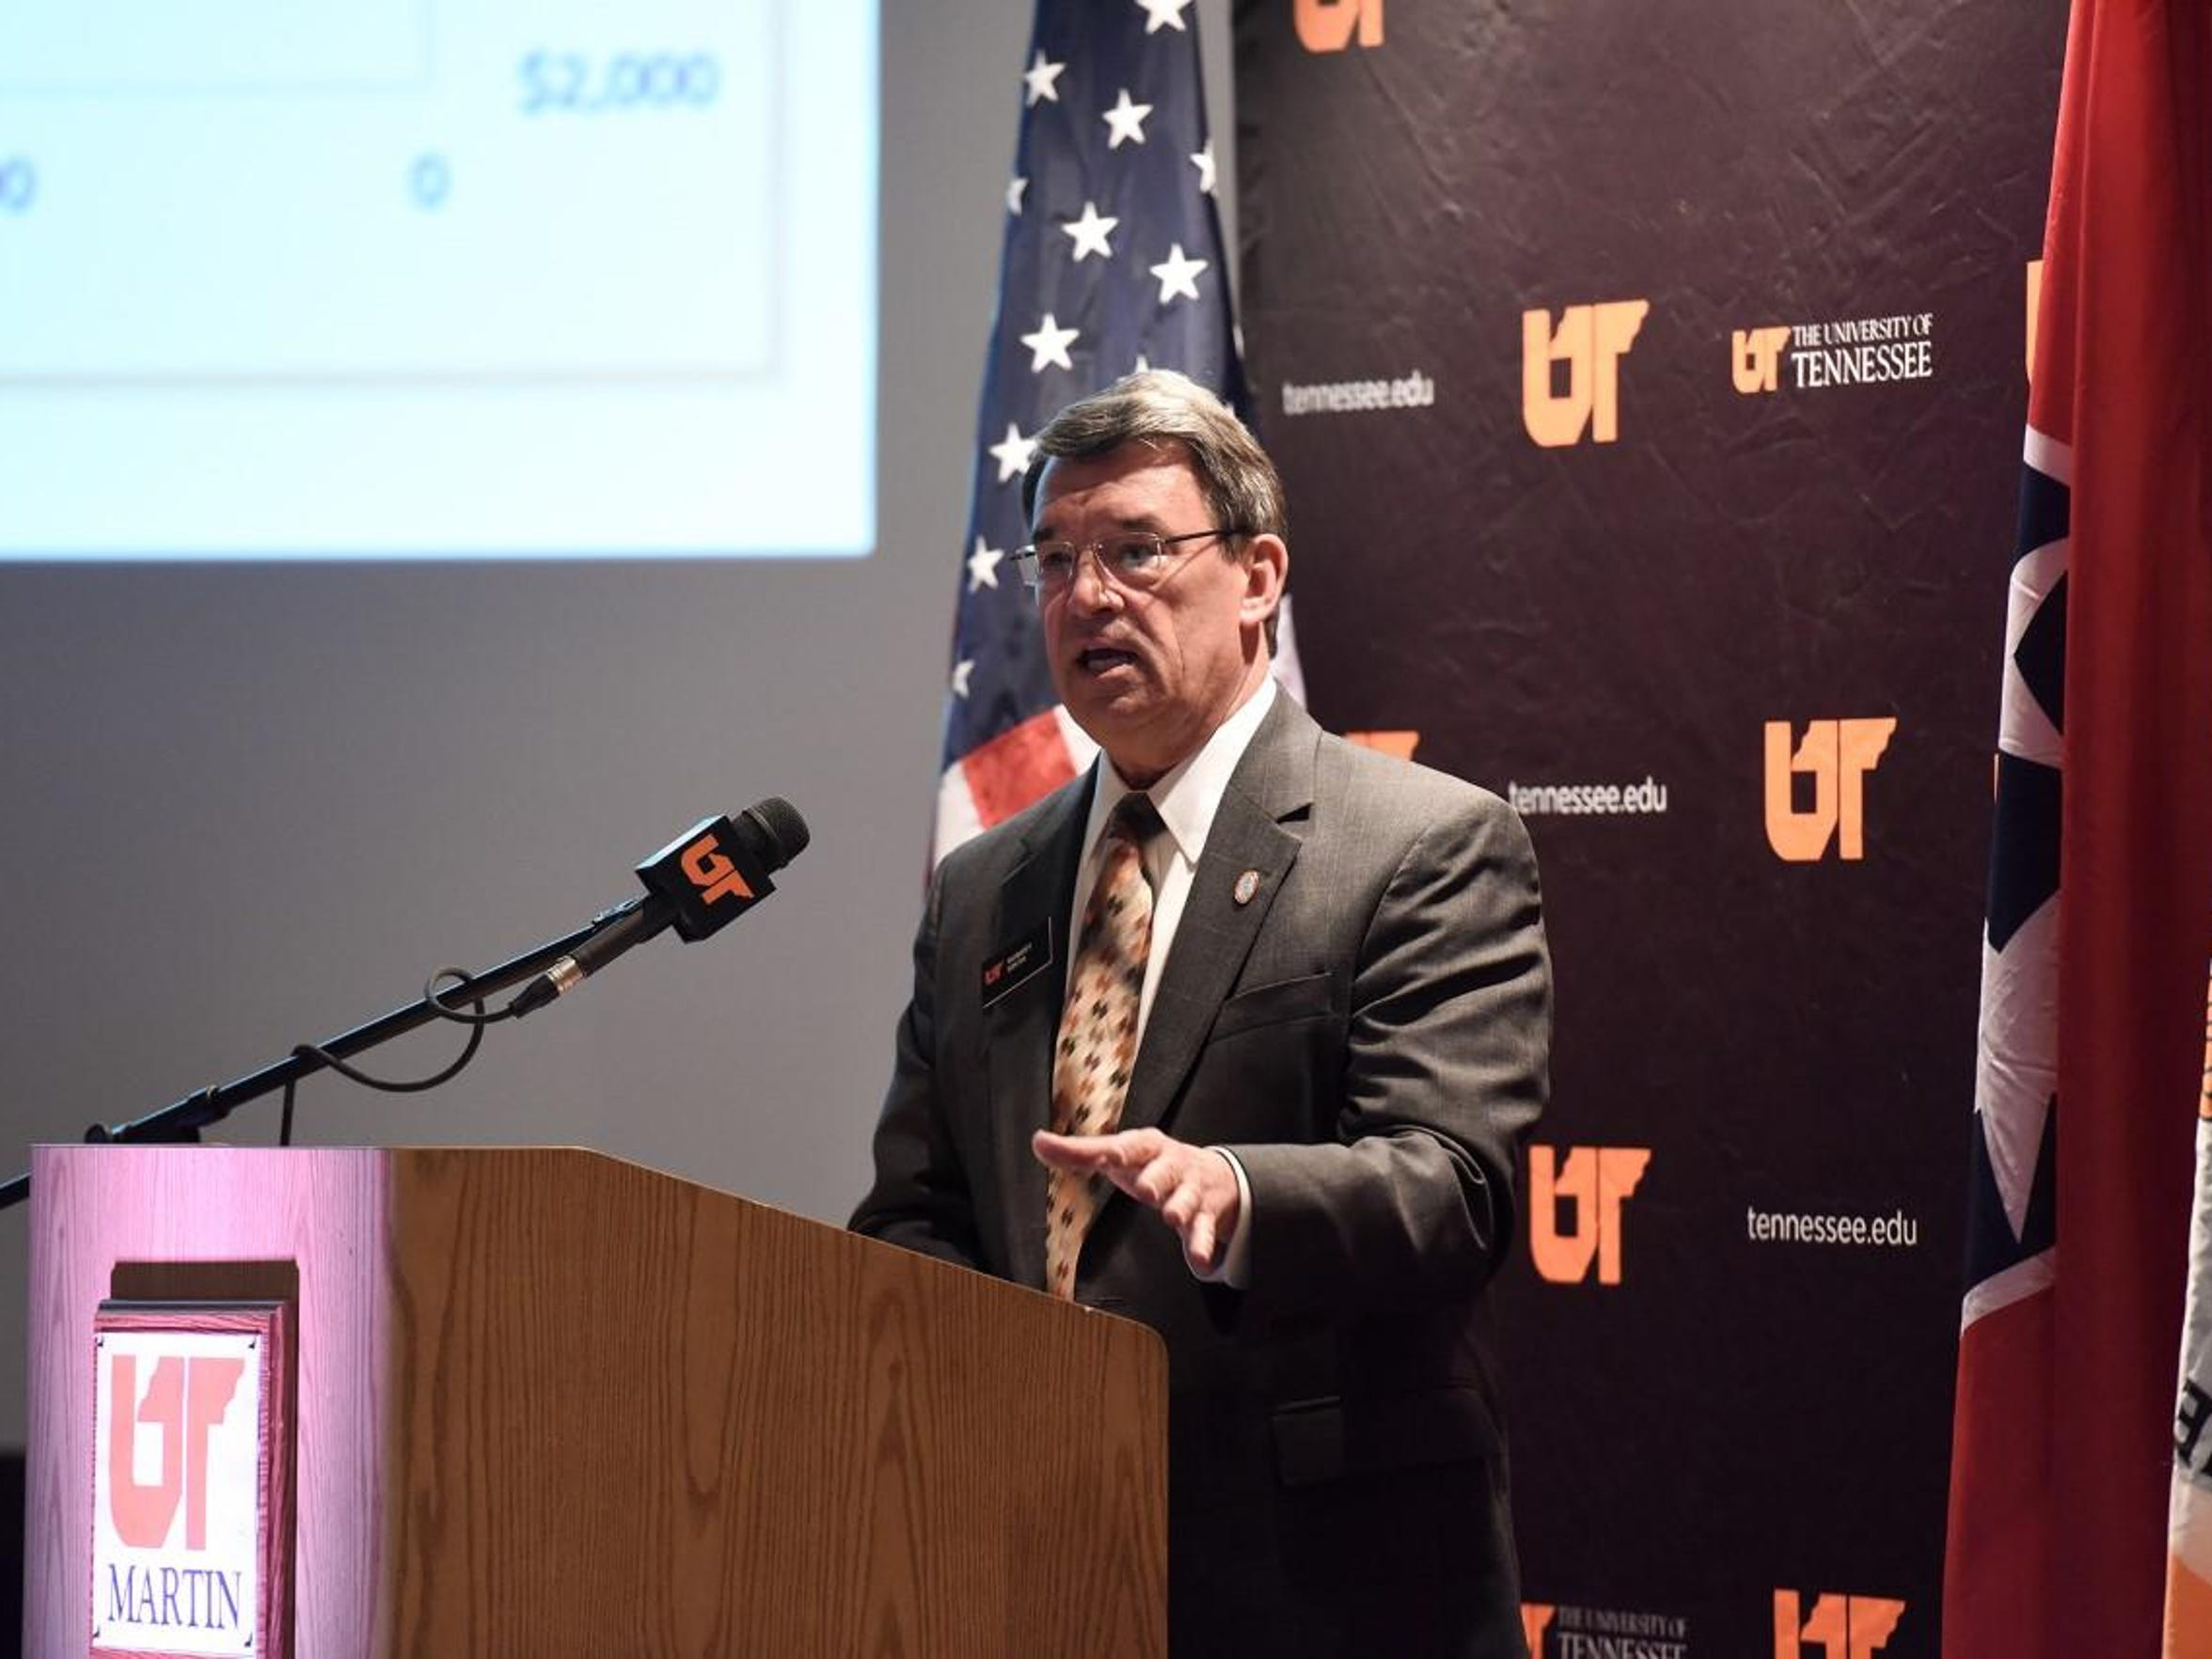 Interim Chancellor Robert Smith began work at UTM on